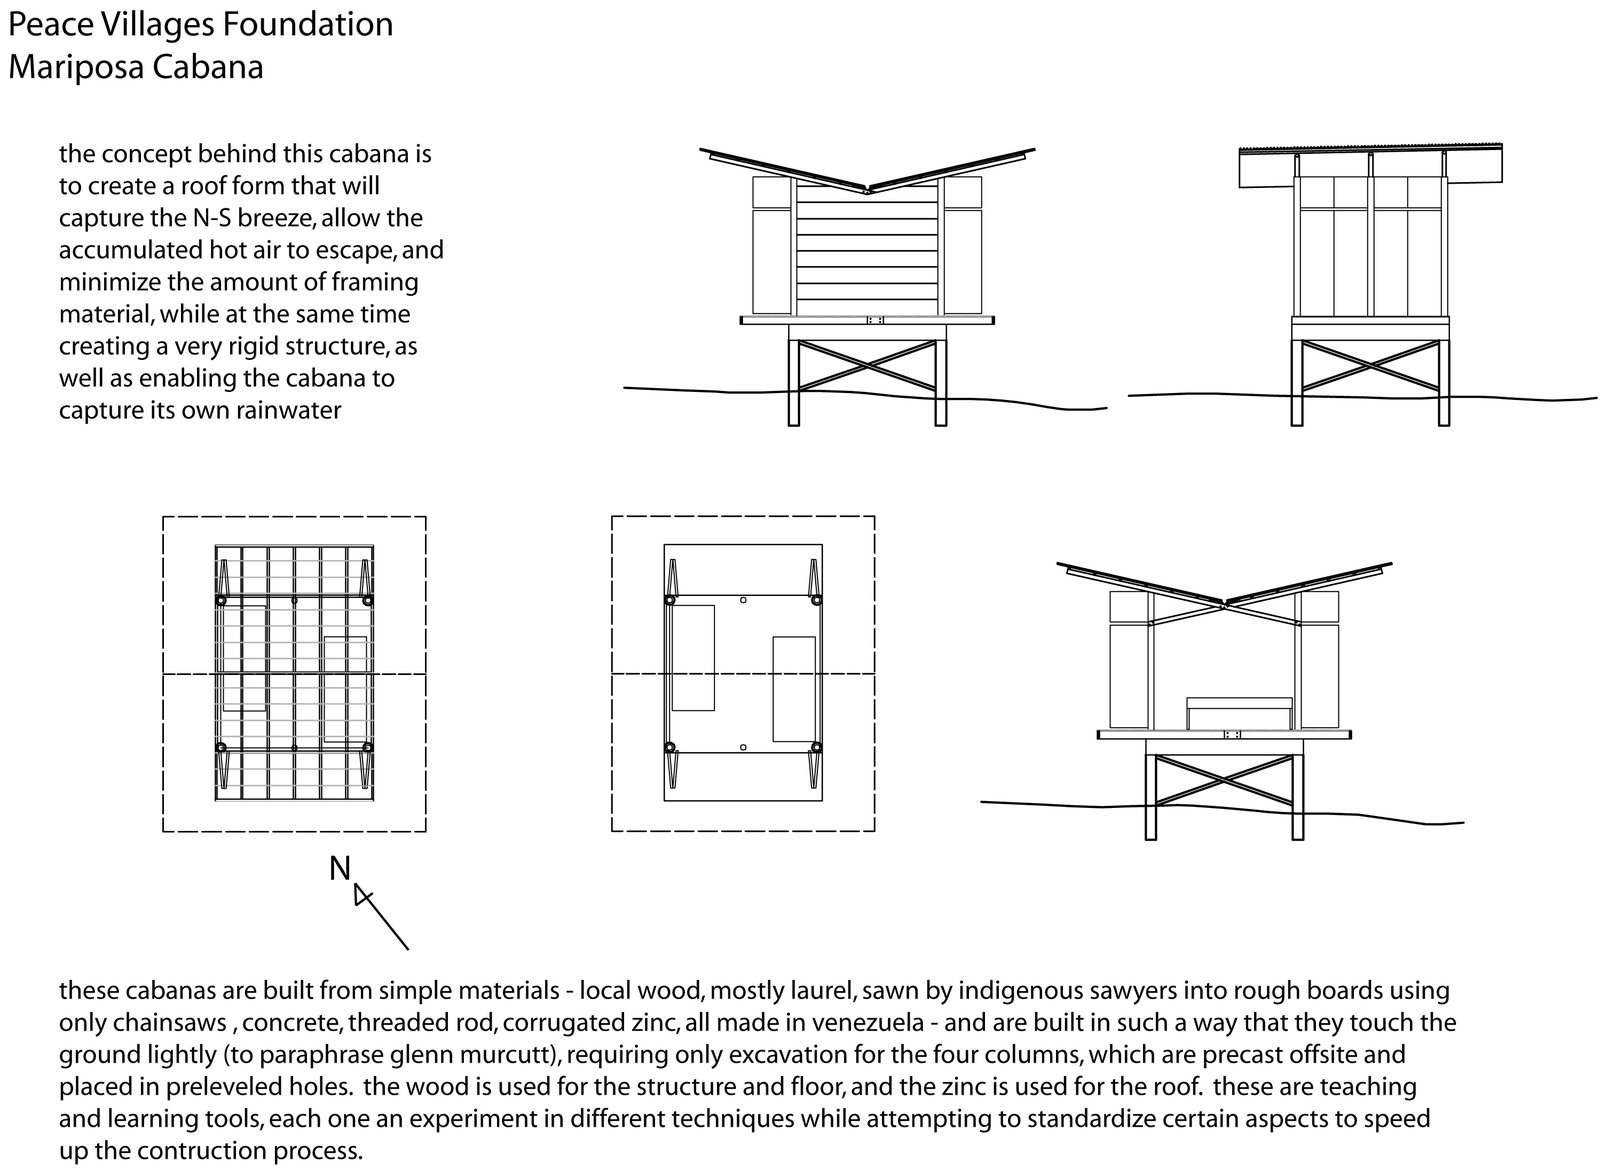 Nonn and Martin designed models that were simple and straightforward, with passive strategies for ventilation and cooling. These drawings can be used to build more shelters in the architects' absence. Venezuela's Eco Cabanas - Photo 6 of 13